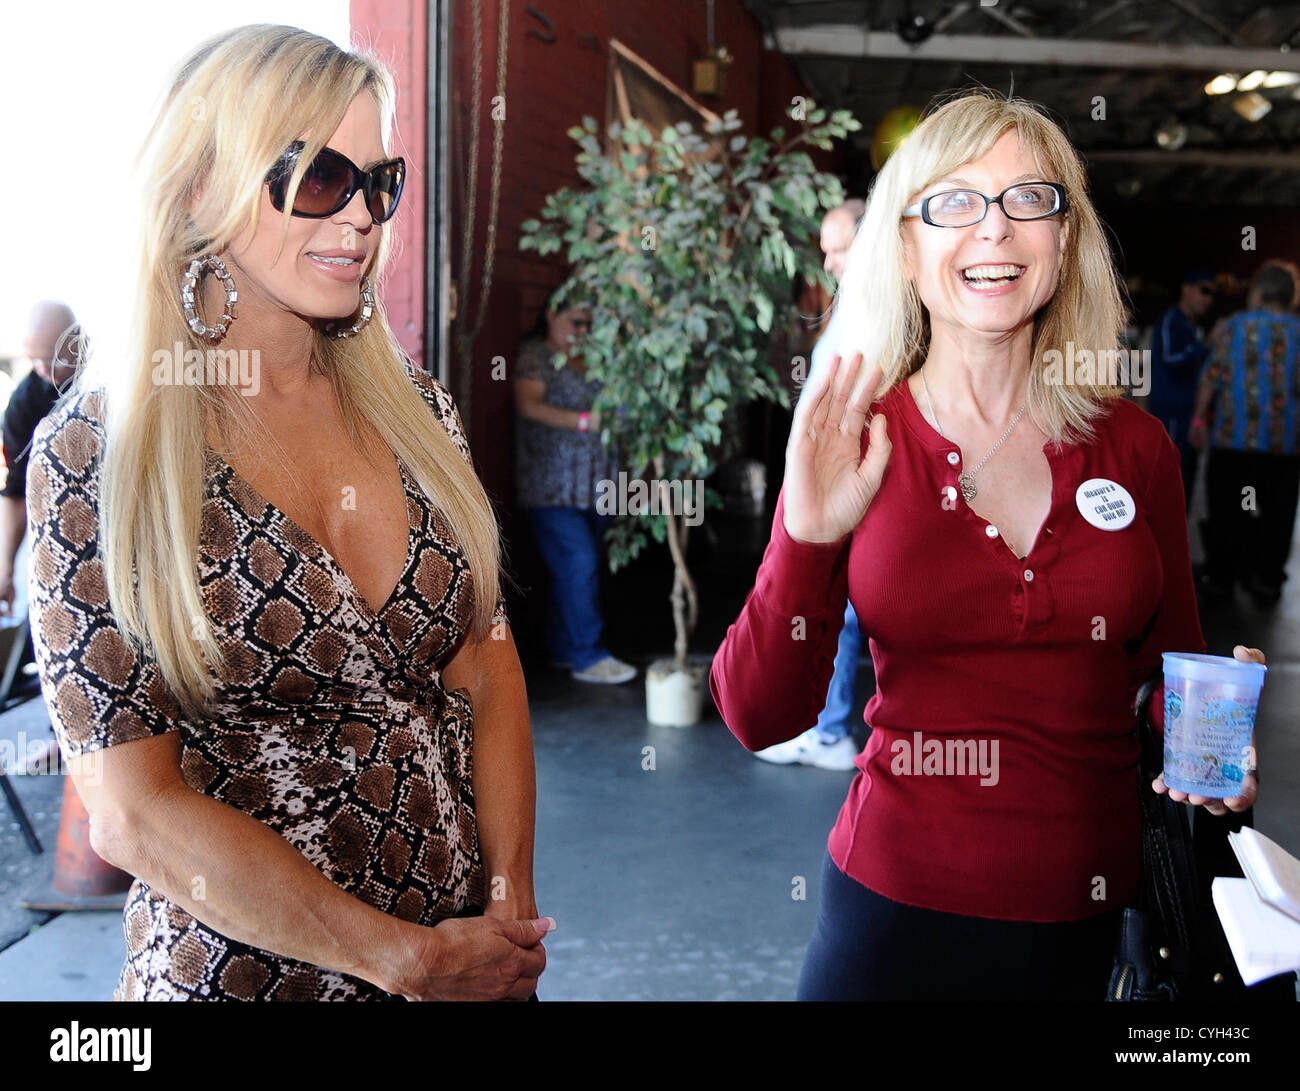 Nina hartley pet girl consider, that